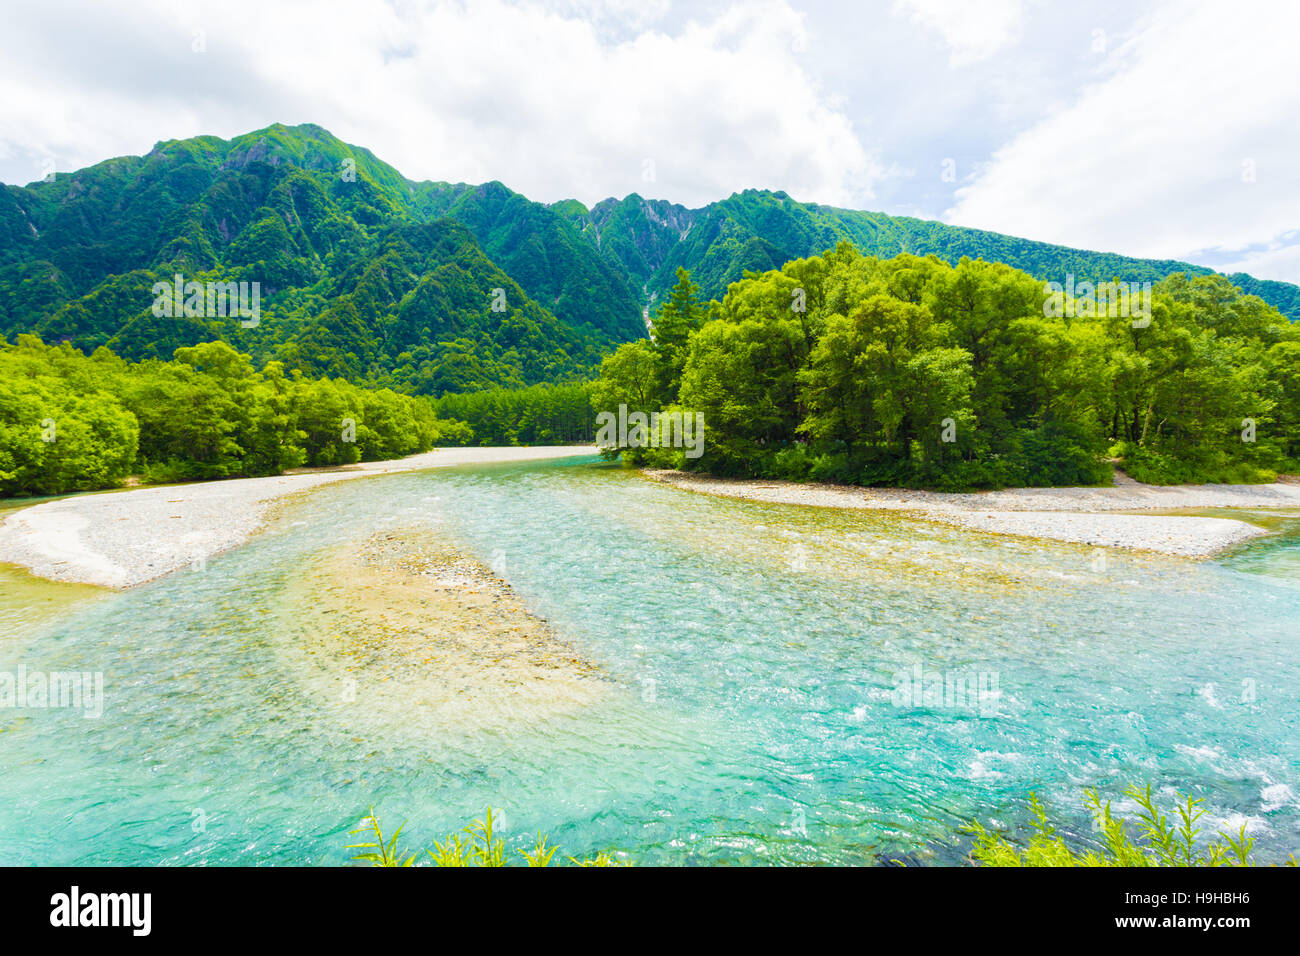 Mountains And Crystal Clear Azusa River In This Pristine Untouched Nature Landscape Japanese Alps Town Of Kamikochi Naga